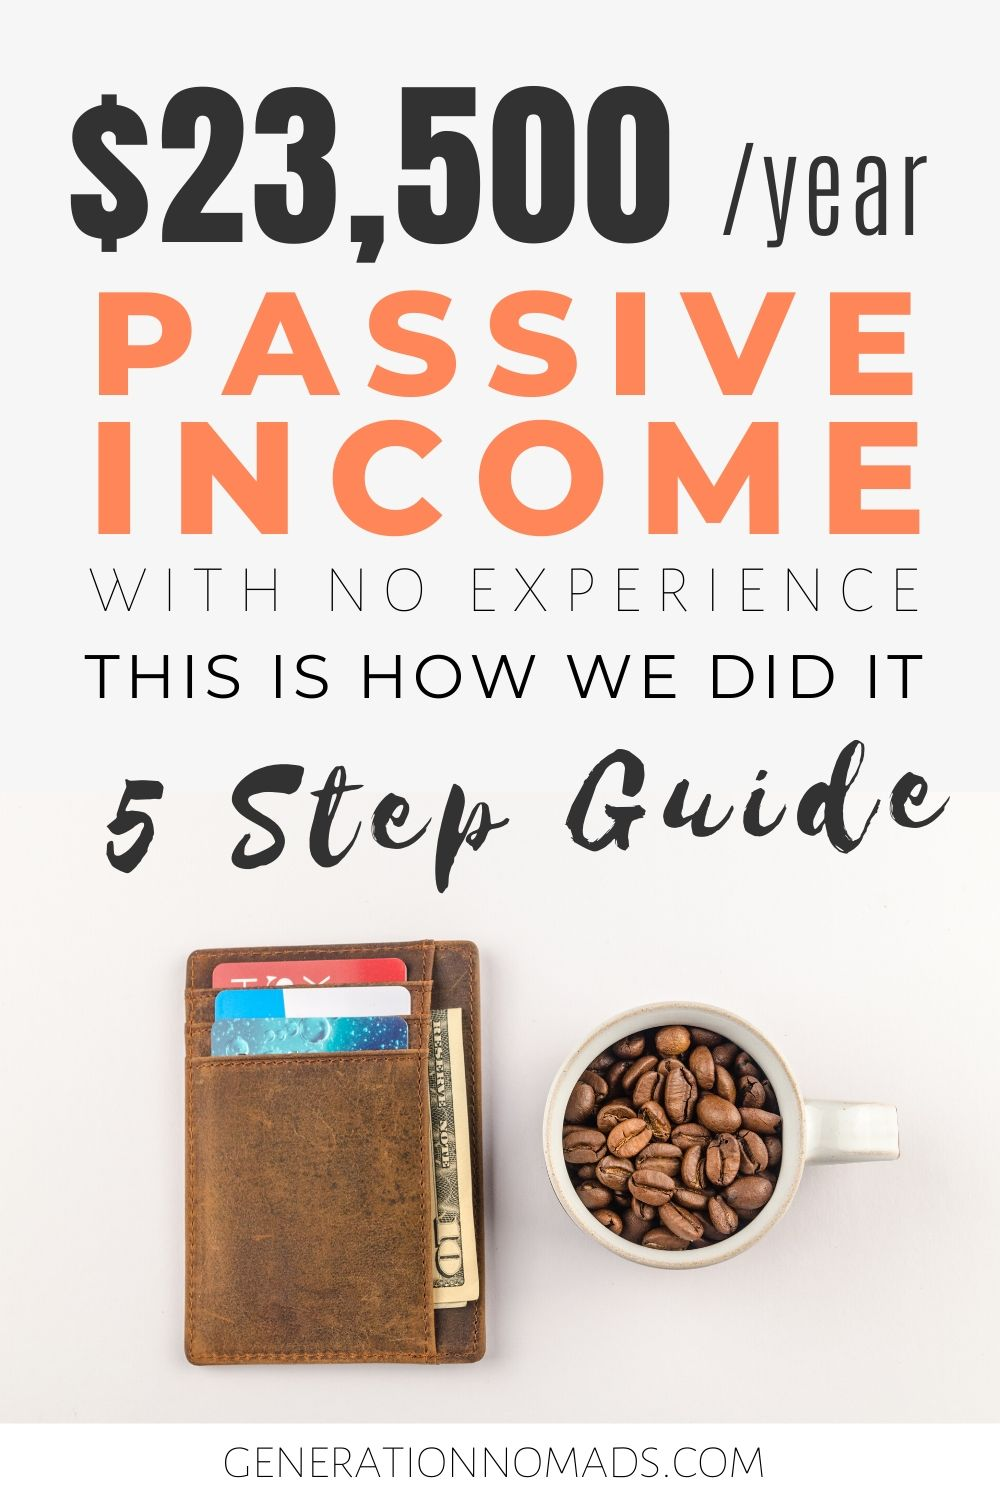 Do you wonder if financial freedom is really possible? We tell you how we generated over $23,500 in passive income in 1 year while traveling - with no prior experience (without a profitable blog). We share with you the passive income strategies we used to create extra income ideas in a beginner proof way. This strategy will help you to learn how rich people think and create additional income from home or make passive income online.